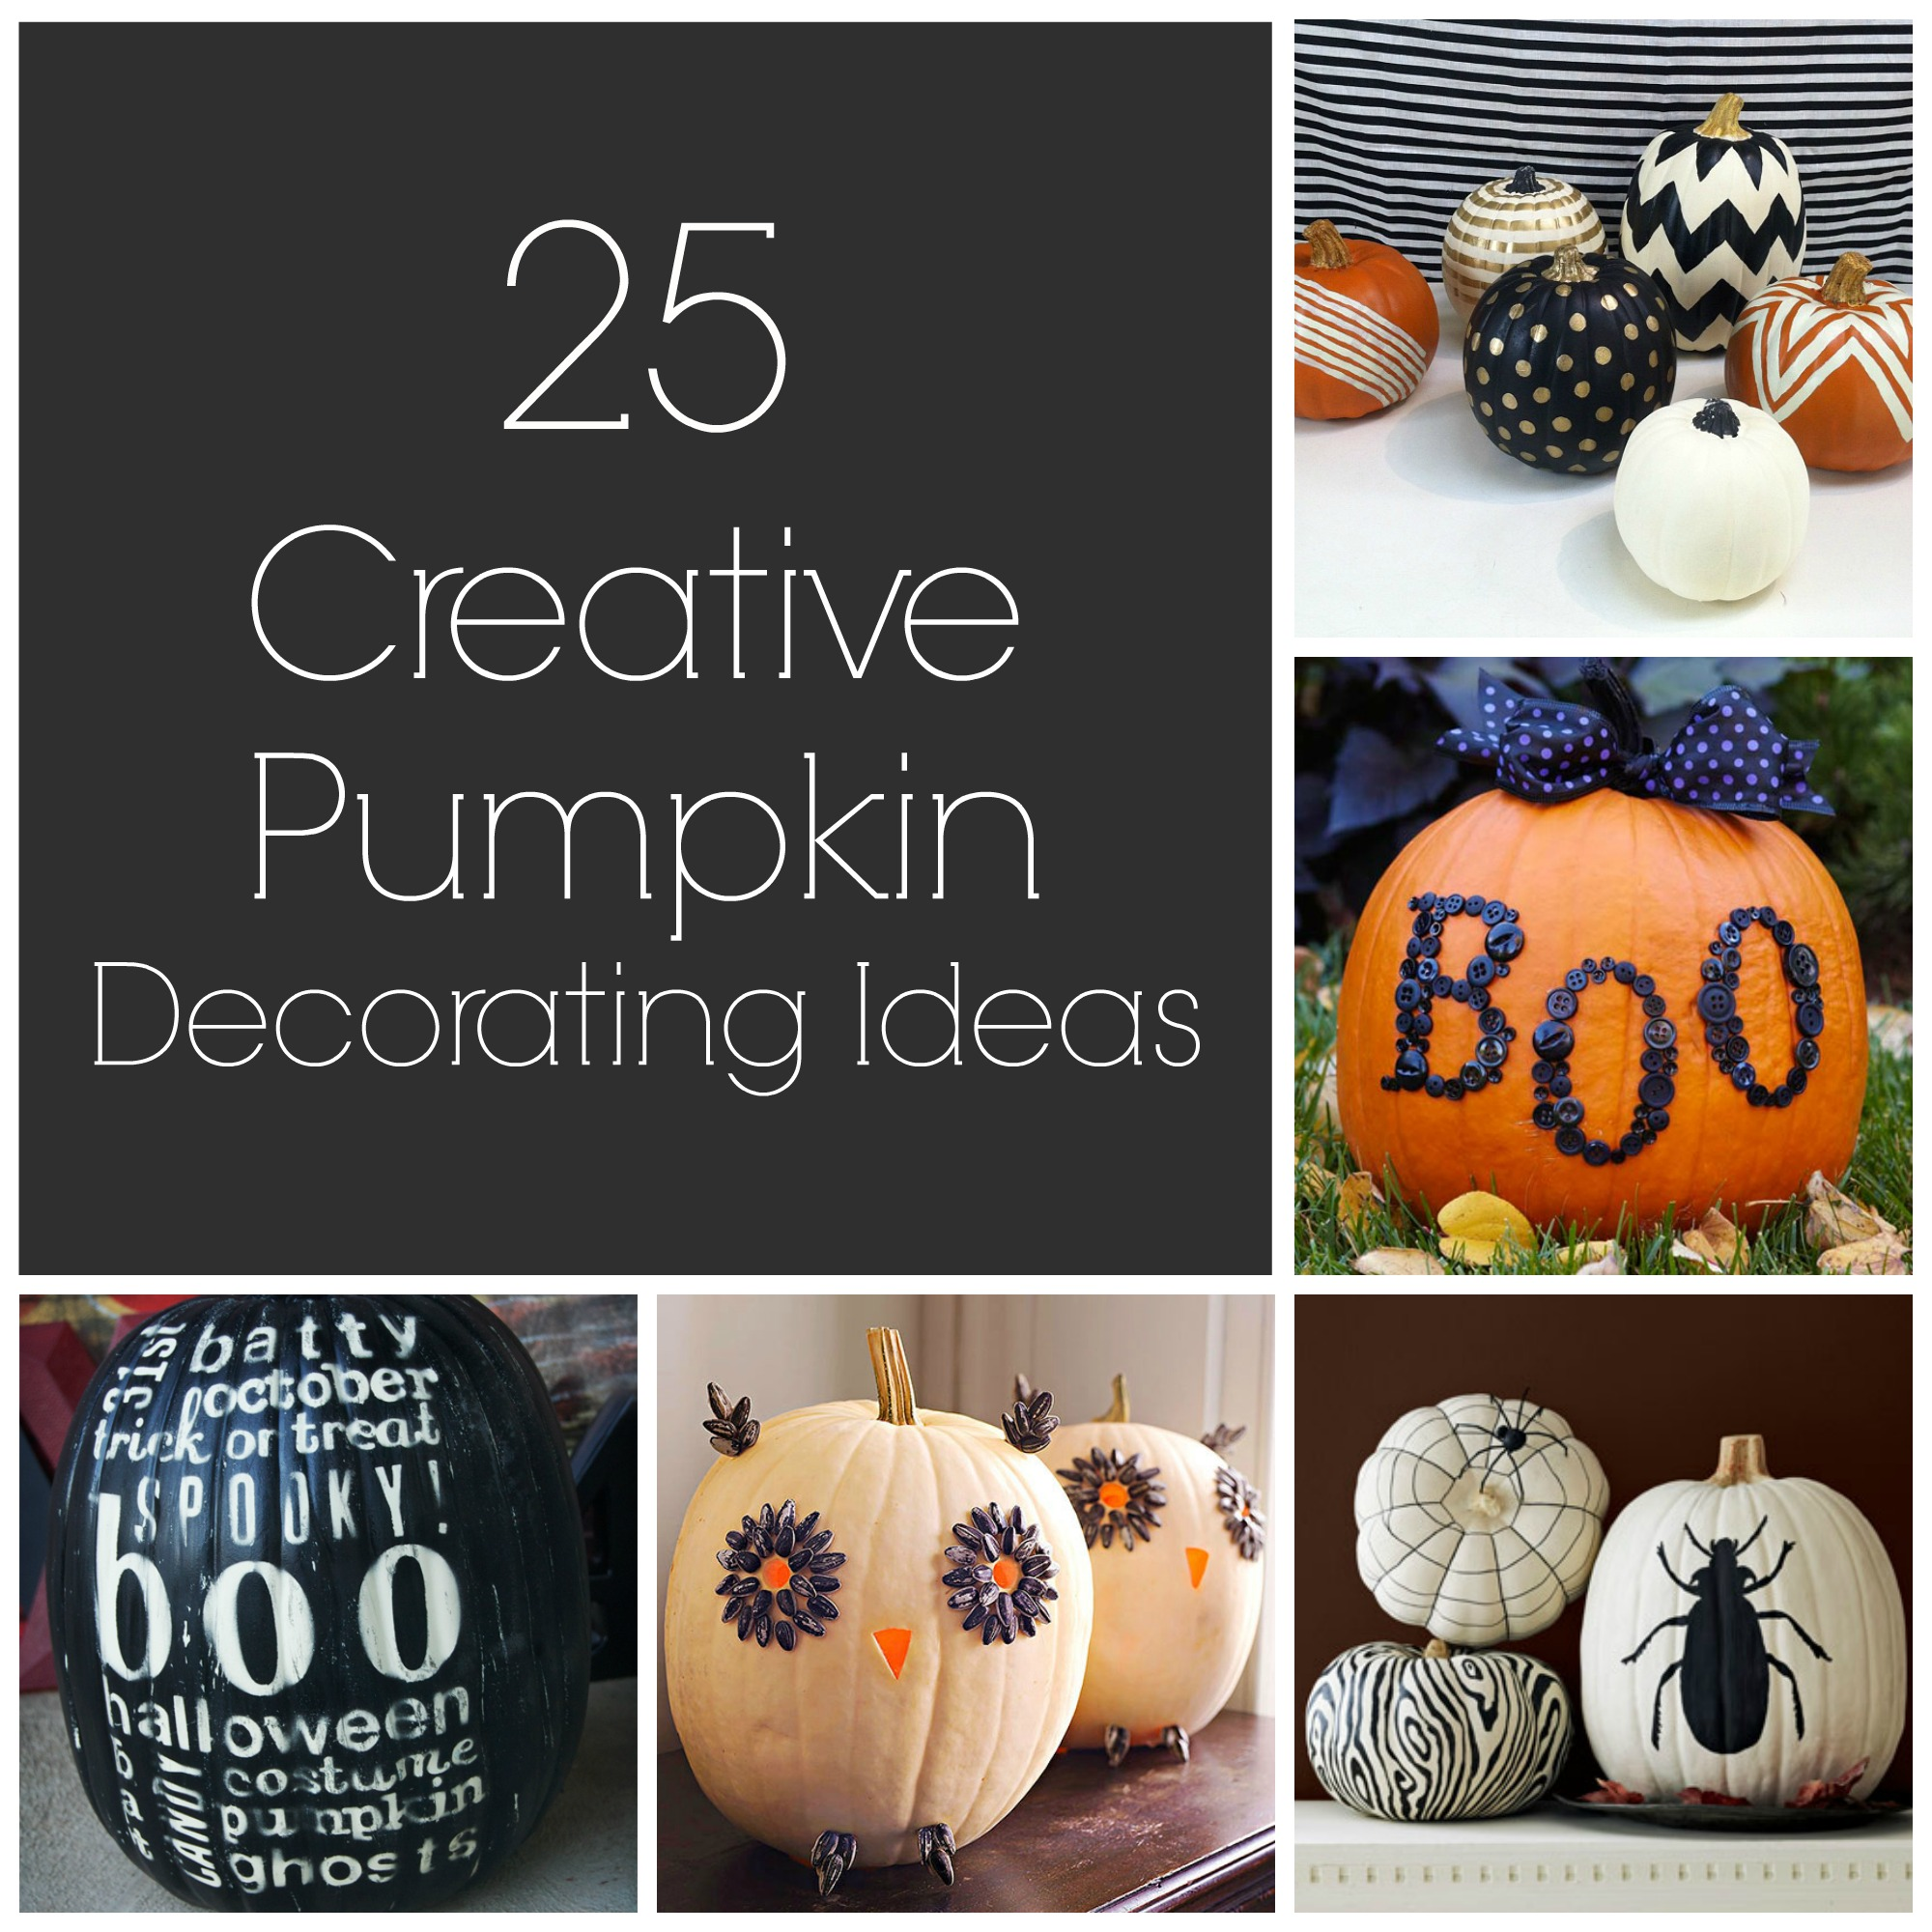 25 Creative Pumpkin Decorating Ideas - artzycreations.com